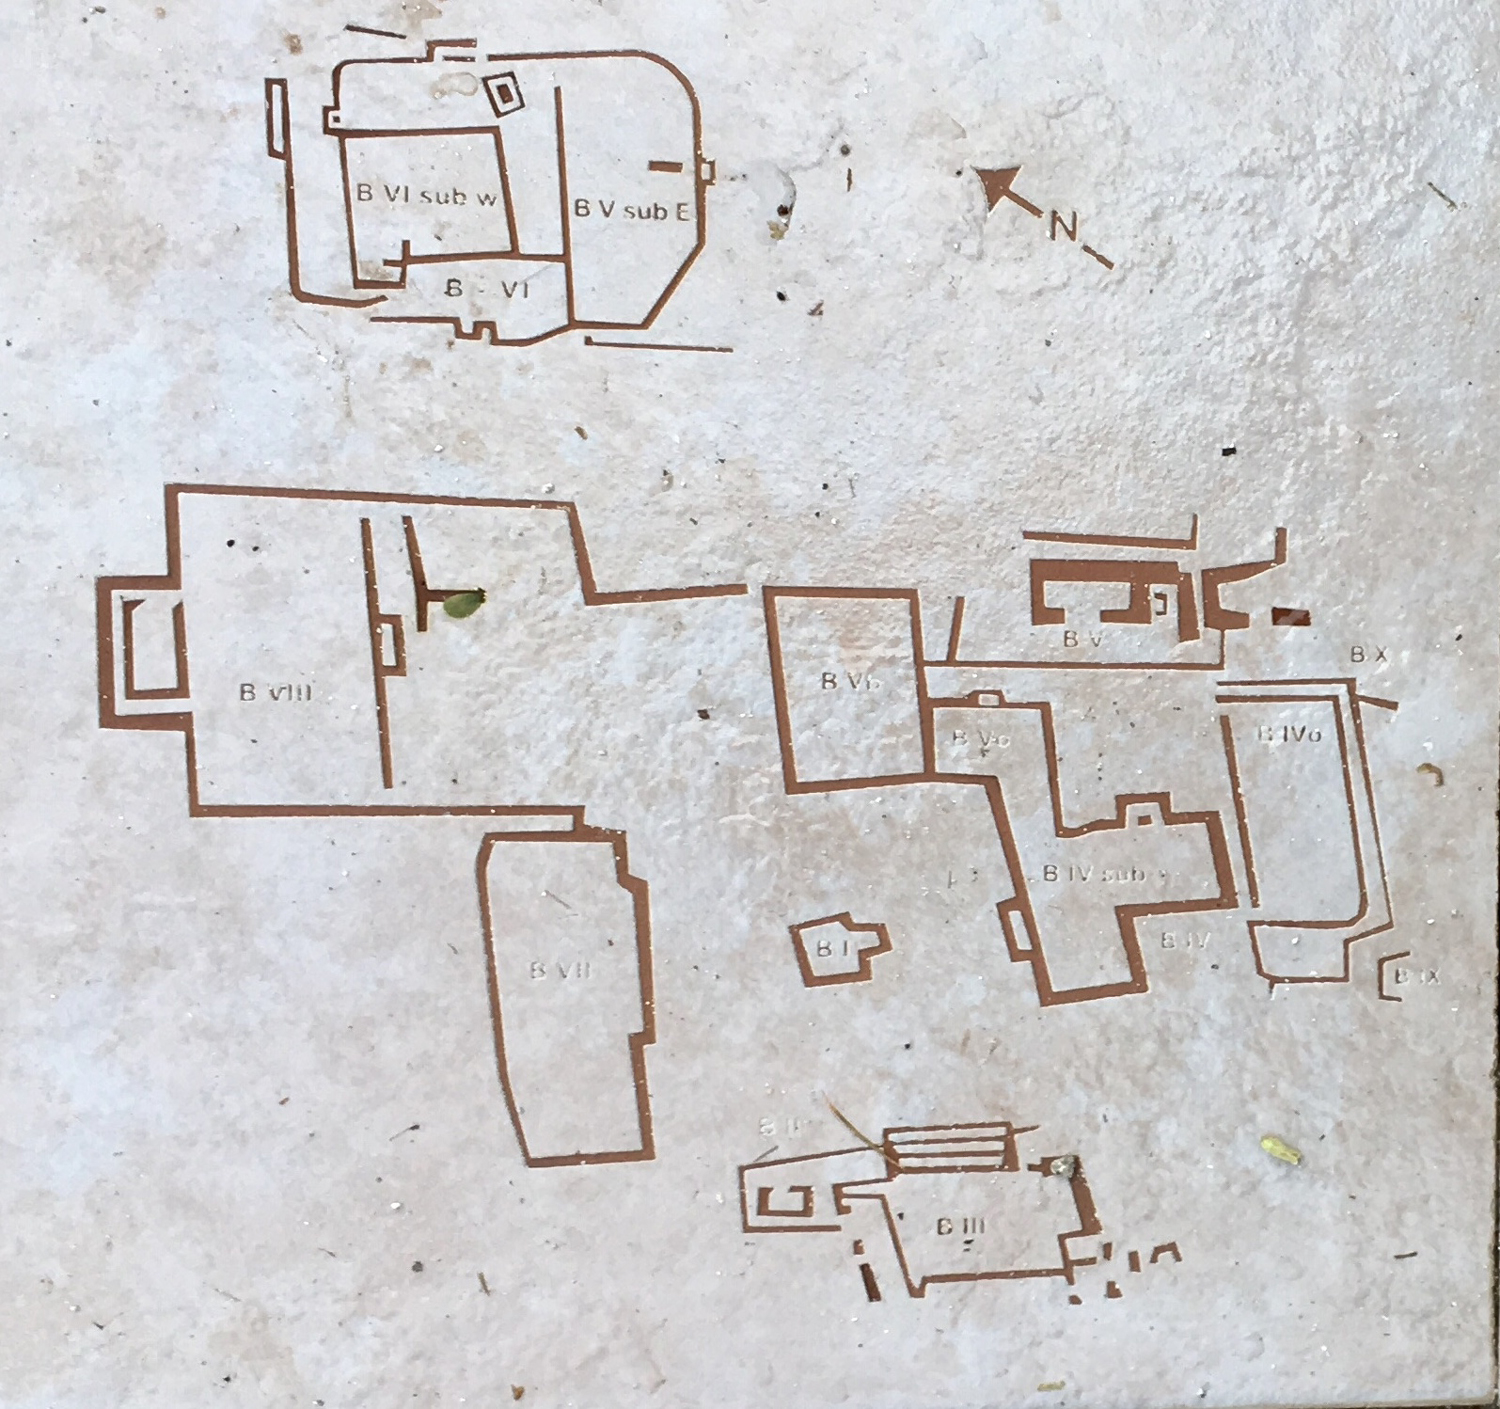 Group B in detail. You will find these maps outside the ruins.